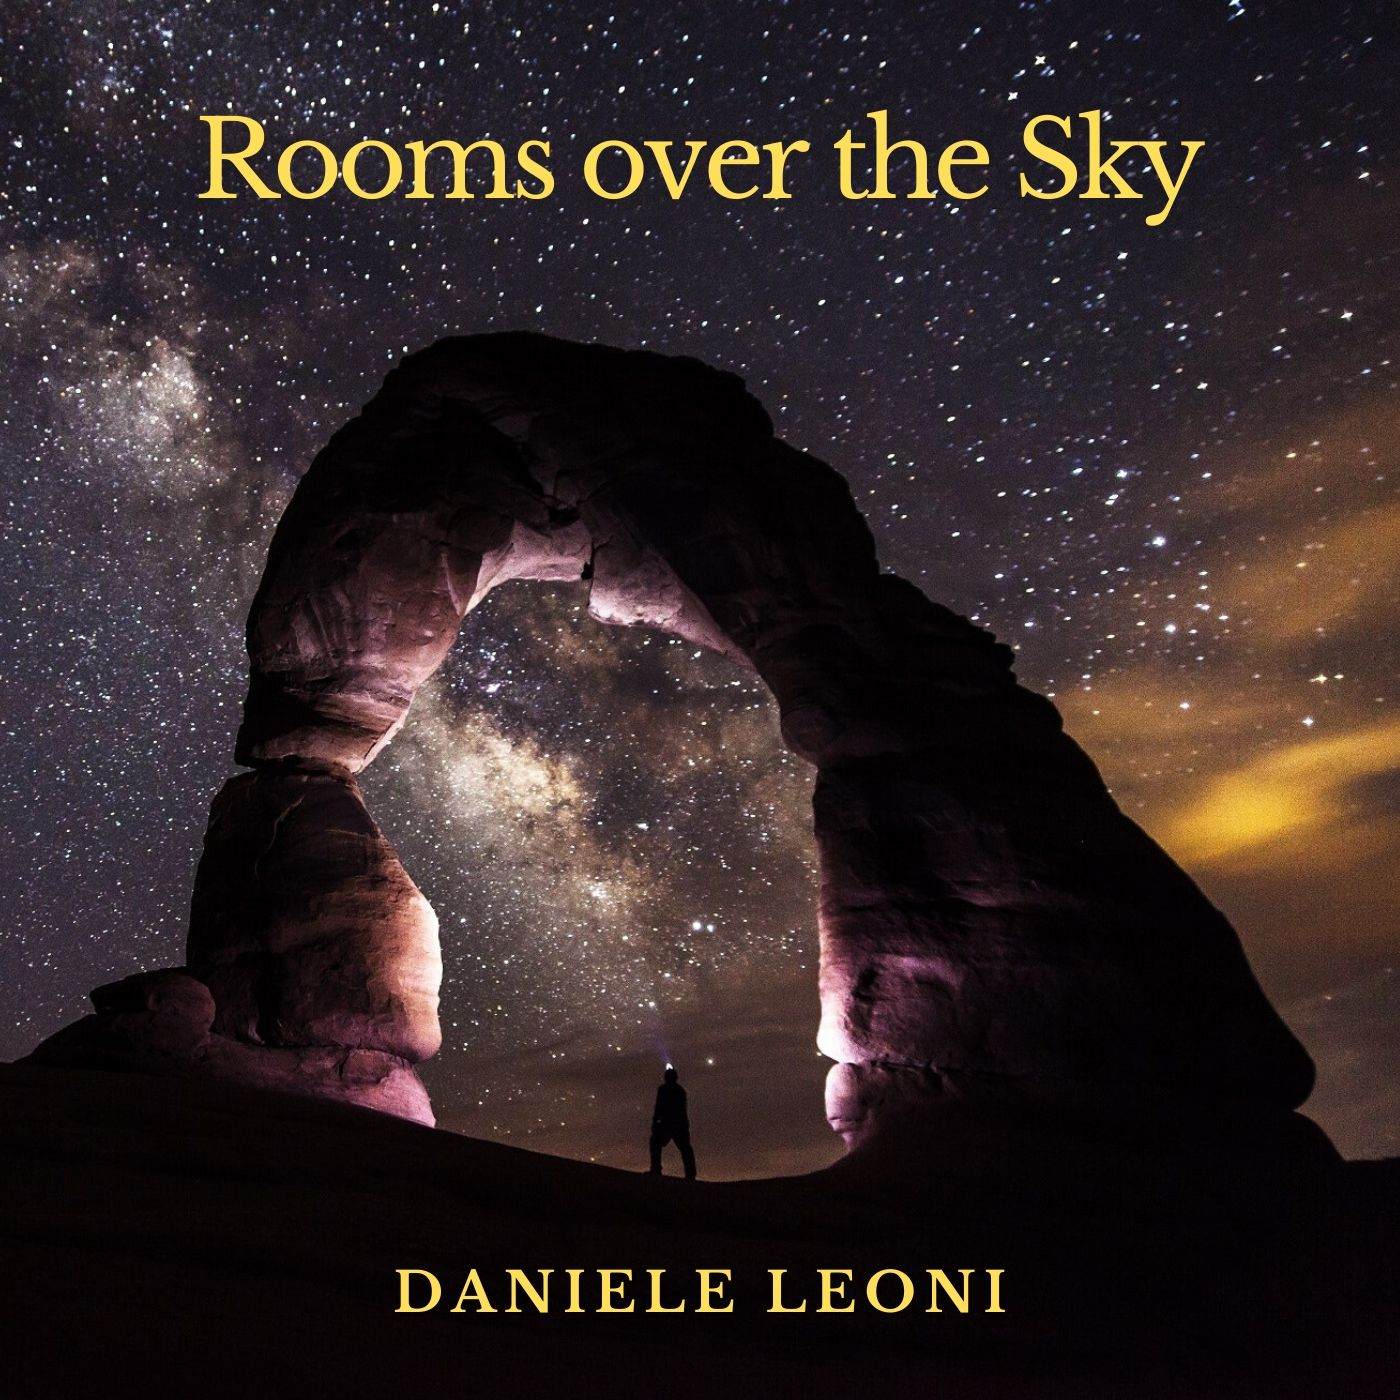 Rooms over the Sky